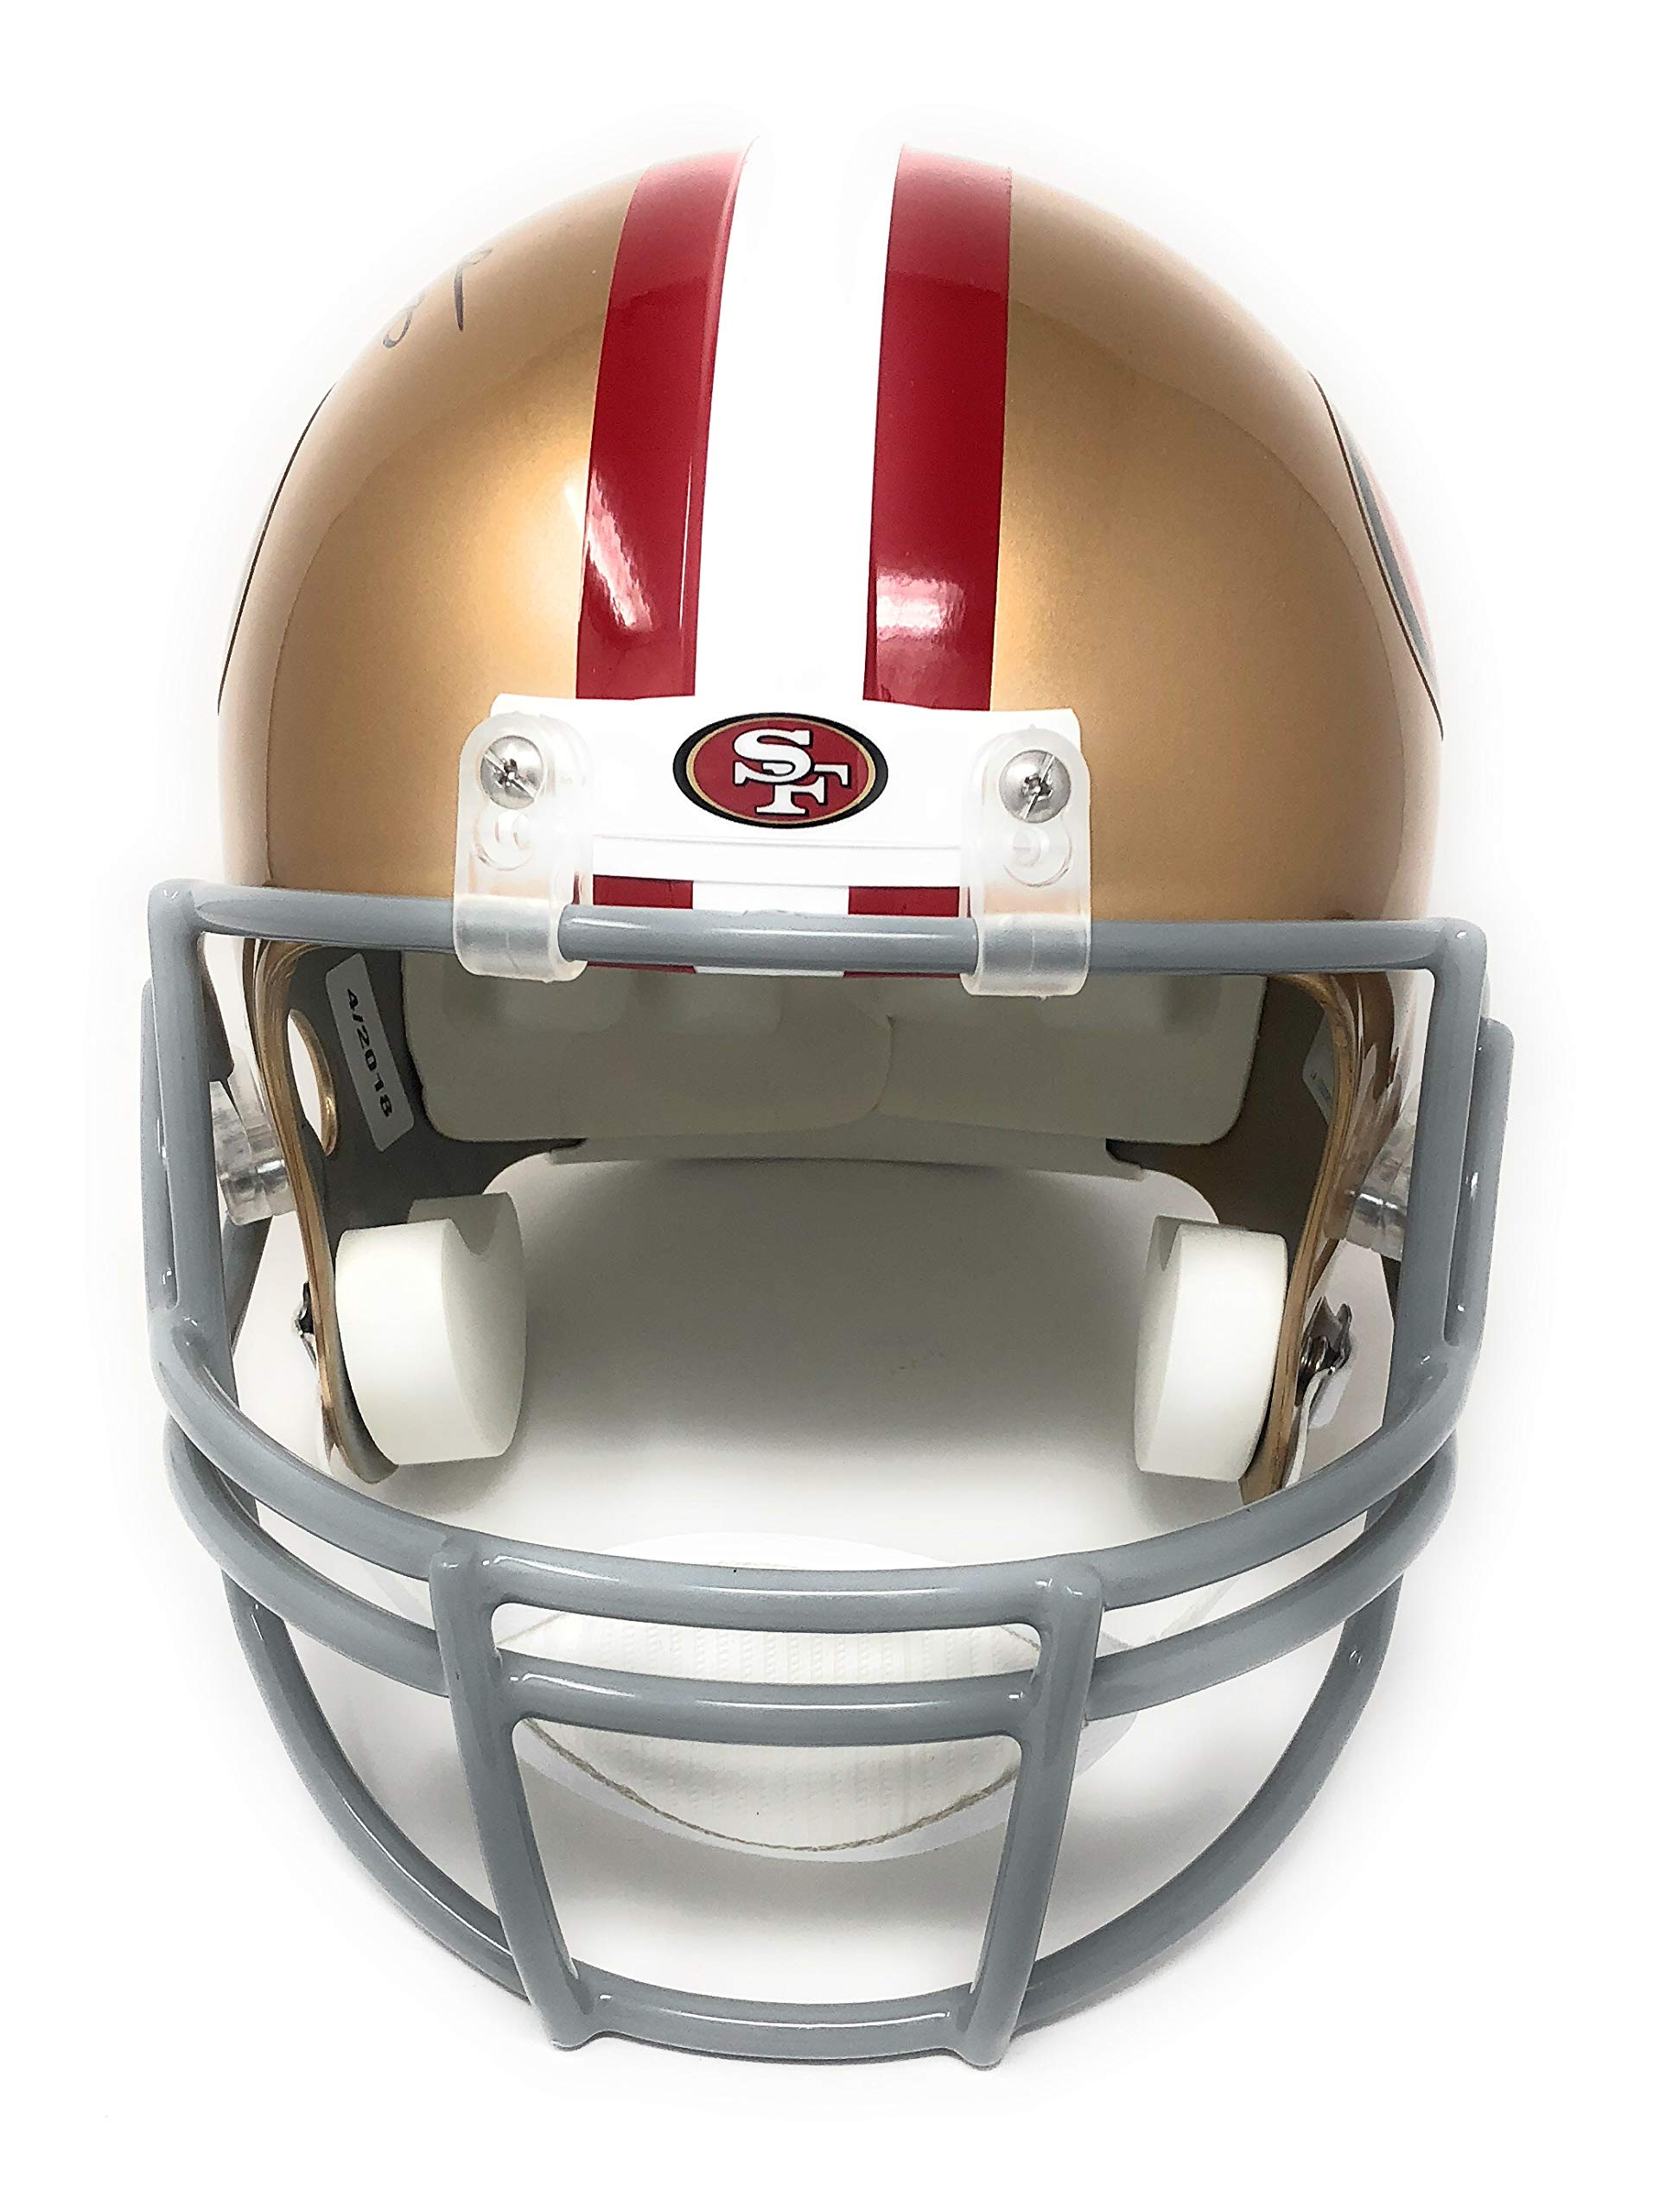 Jerry Rice San Francisco 49ers Signed Autograph Full Size Helmet GTSM Rice Player Hologram Certified